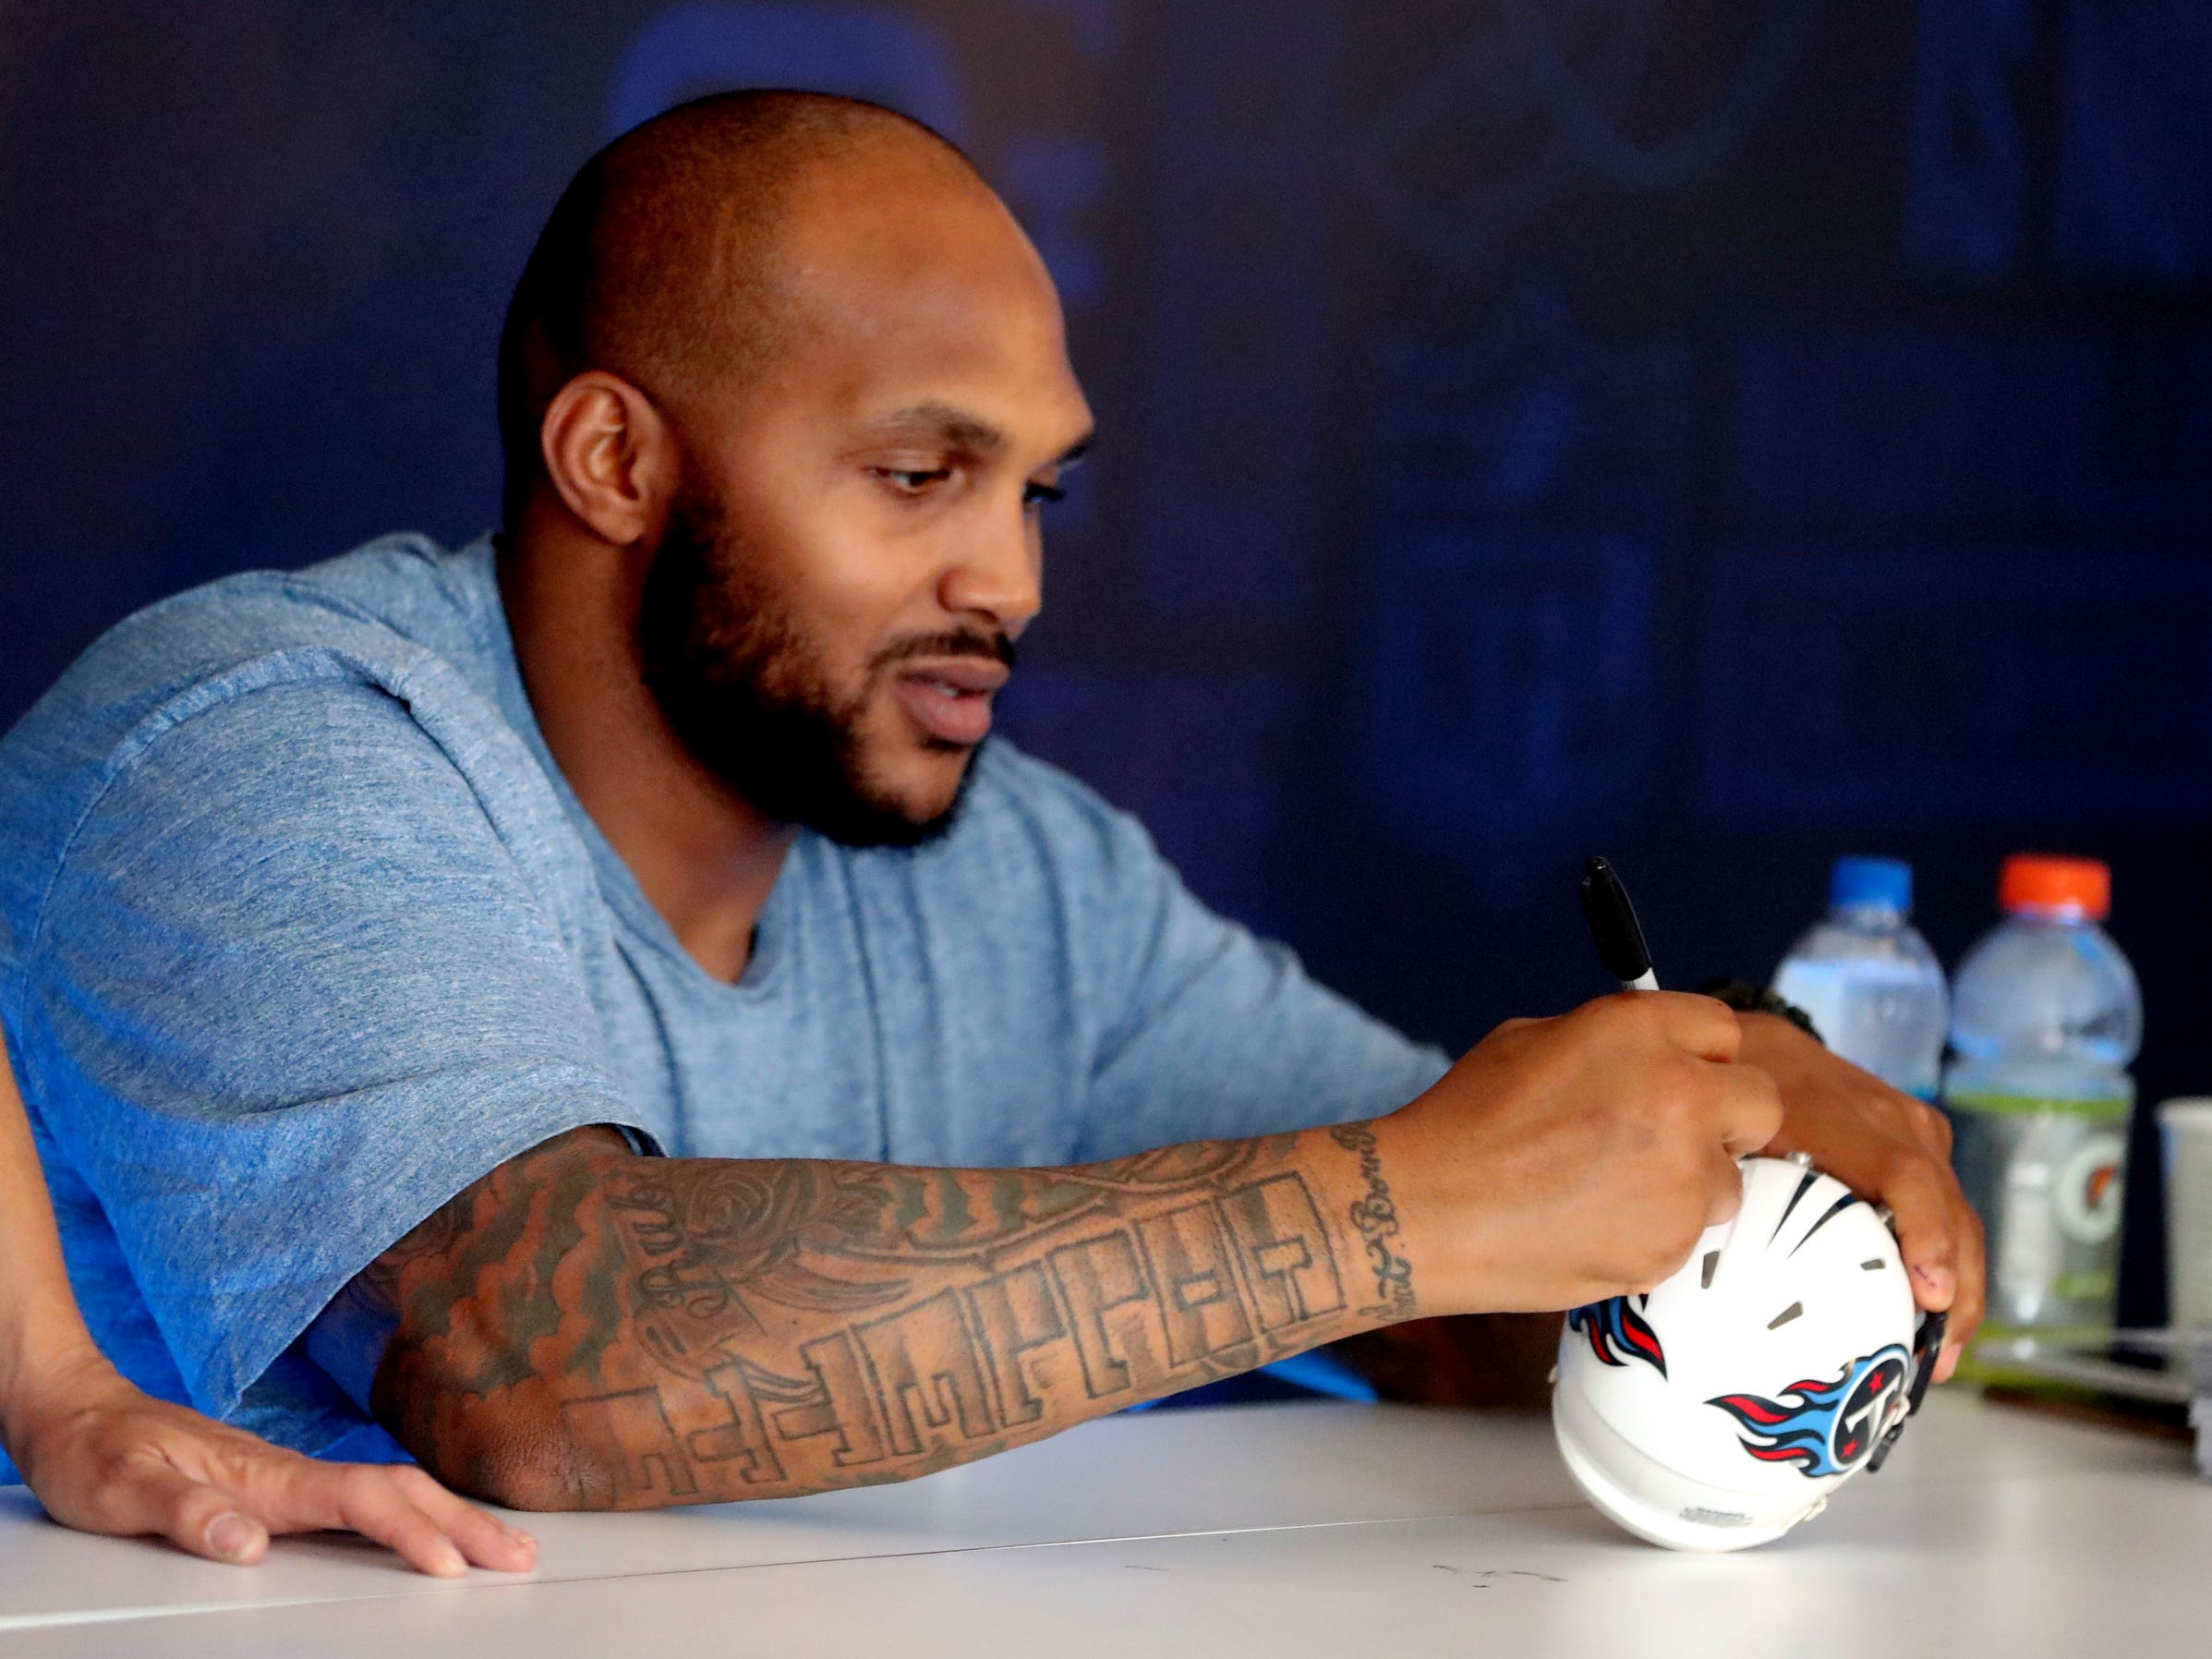 Titan Jurrell Casey signs a small helmet for Alex Gornik at the Autograph stage at the NFL Draft Experience, at Nissan Stadium on Thursday, April 25, 2019, in Nashville, Tennessee.